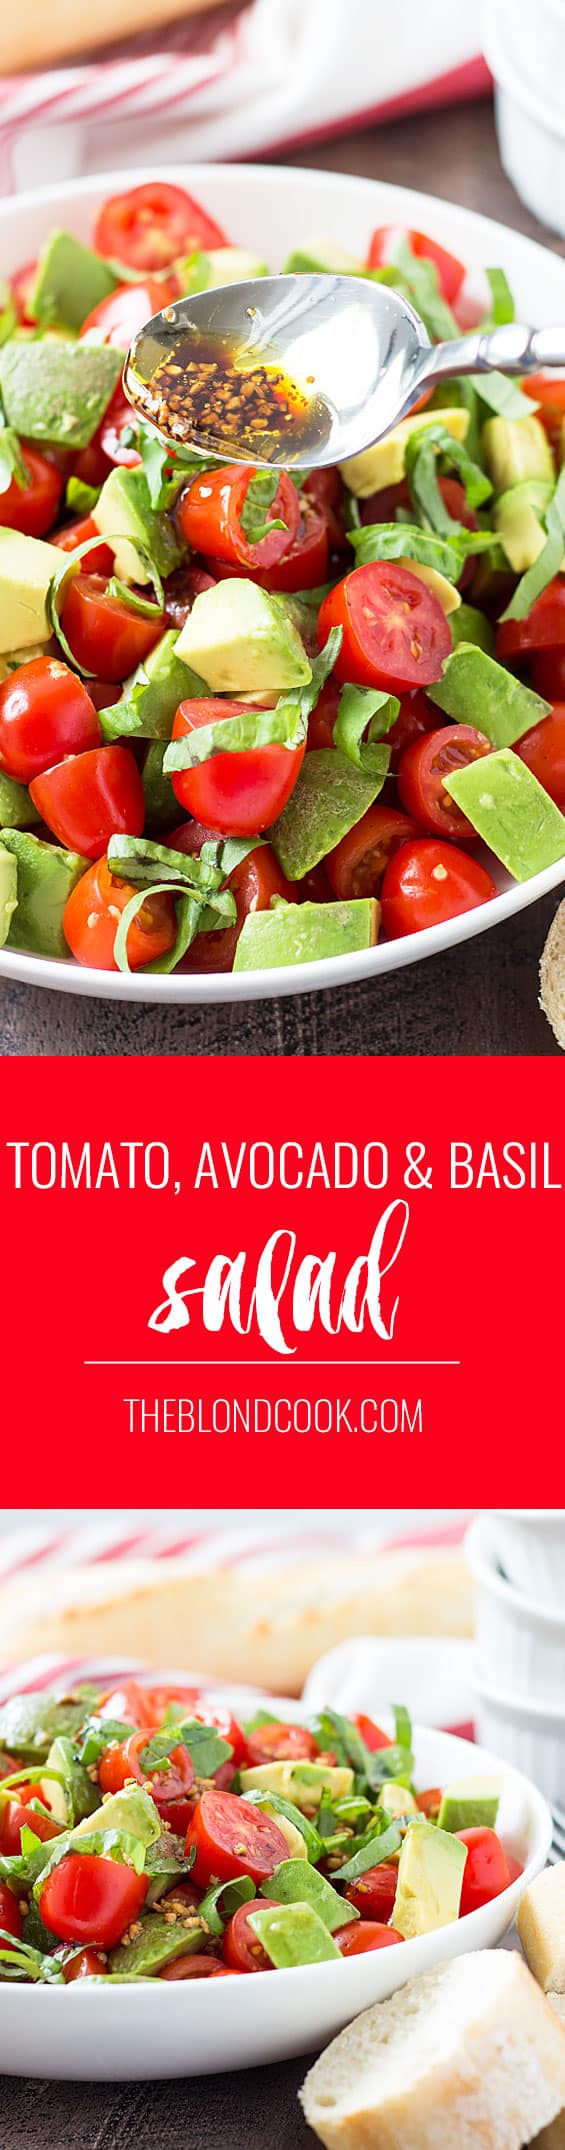 Tomato, Avocado and Basil Salad with a homemade balsamic vinaigrette ...